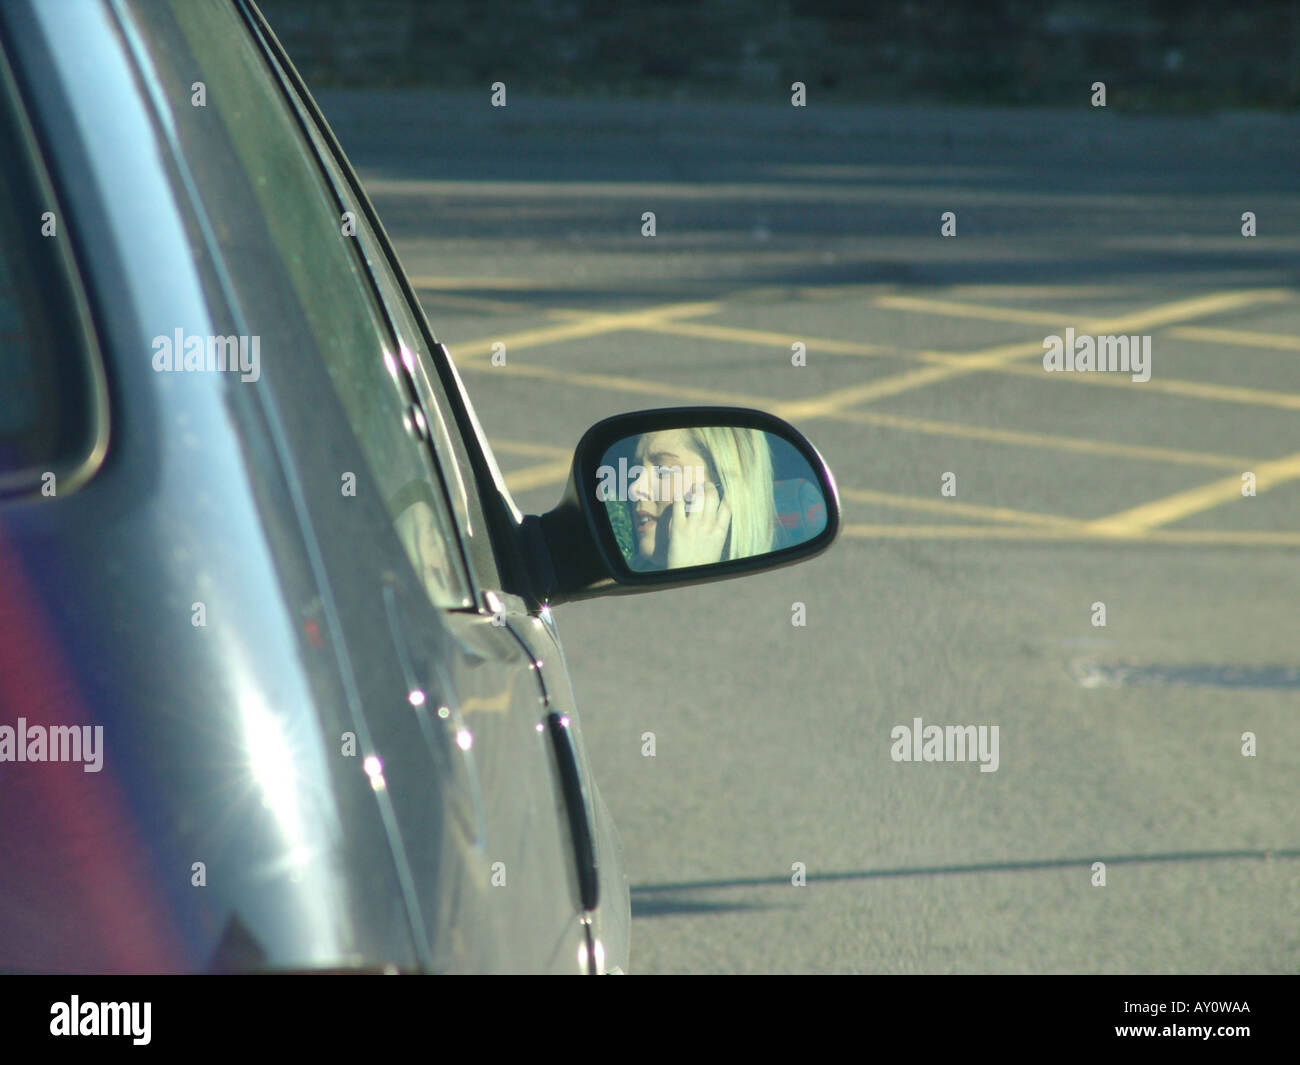 Girl driving a car while using a mobile phone Wales GB UK 2005 - Stock Image